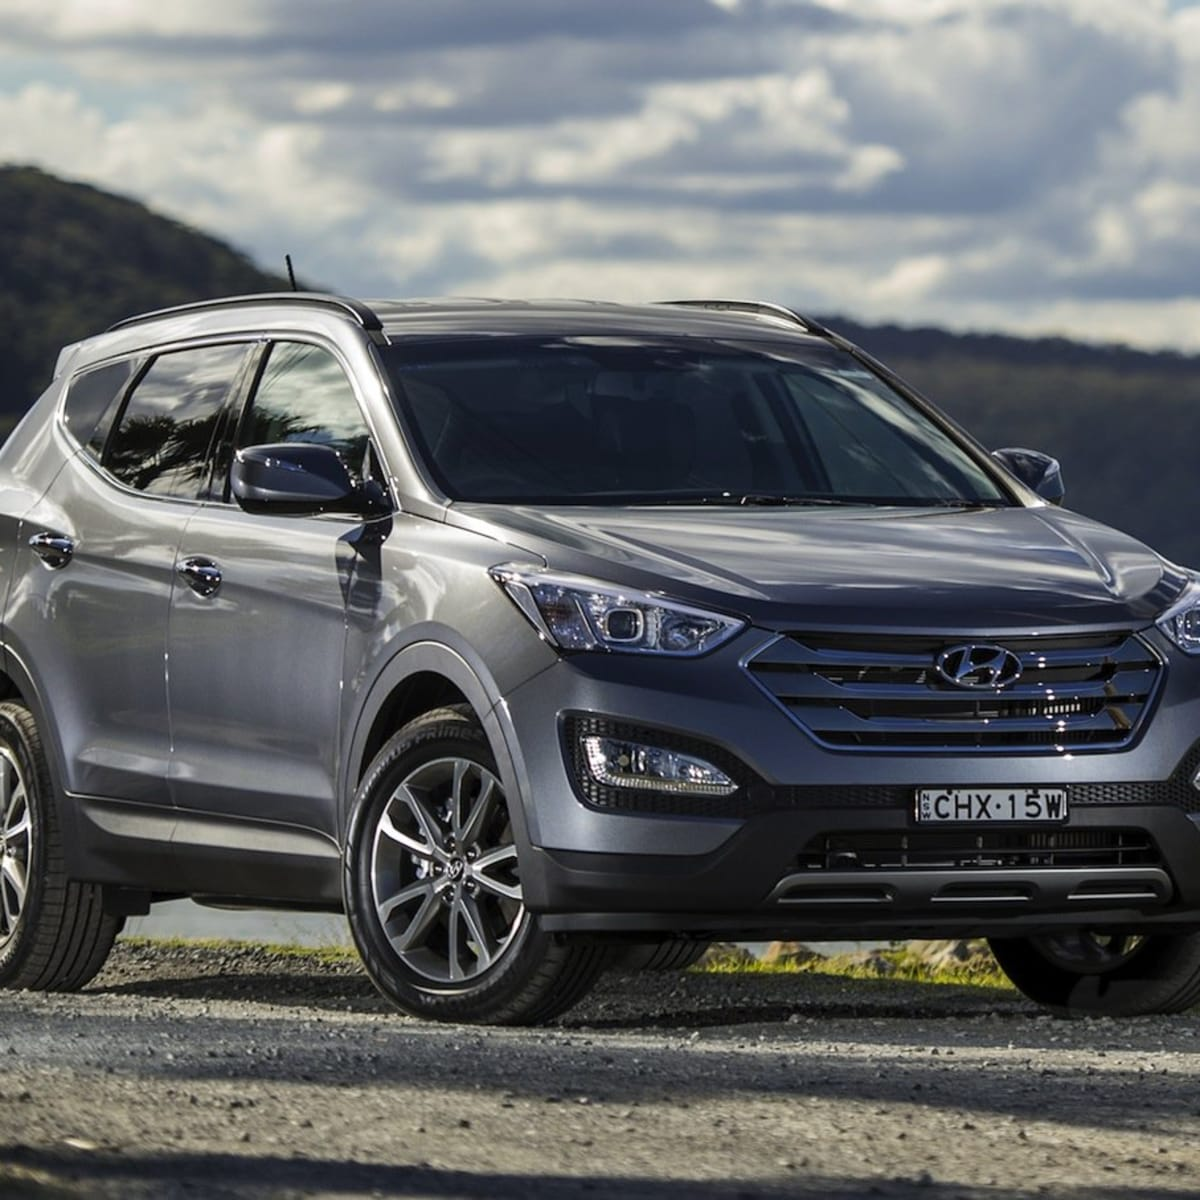 hyundai santa fe: heavy duty towing kit boosts down ball rate to 150kg |  caradvice